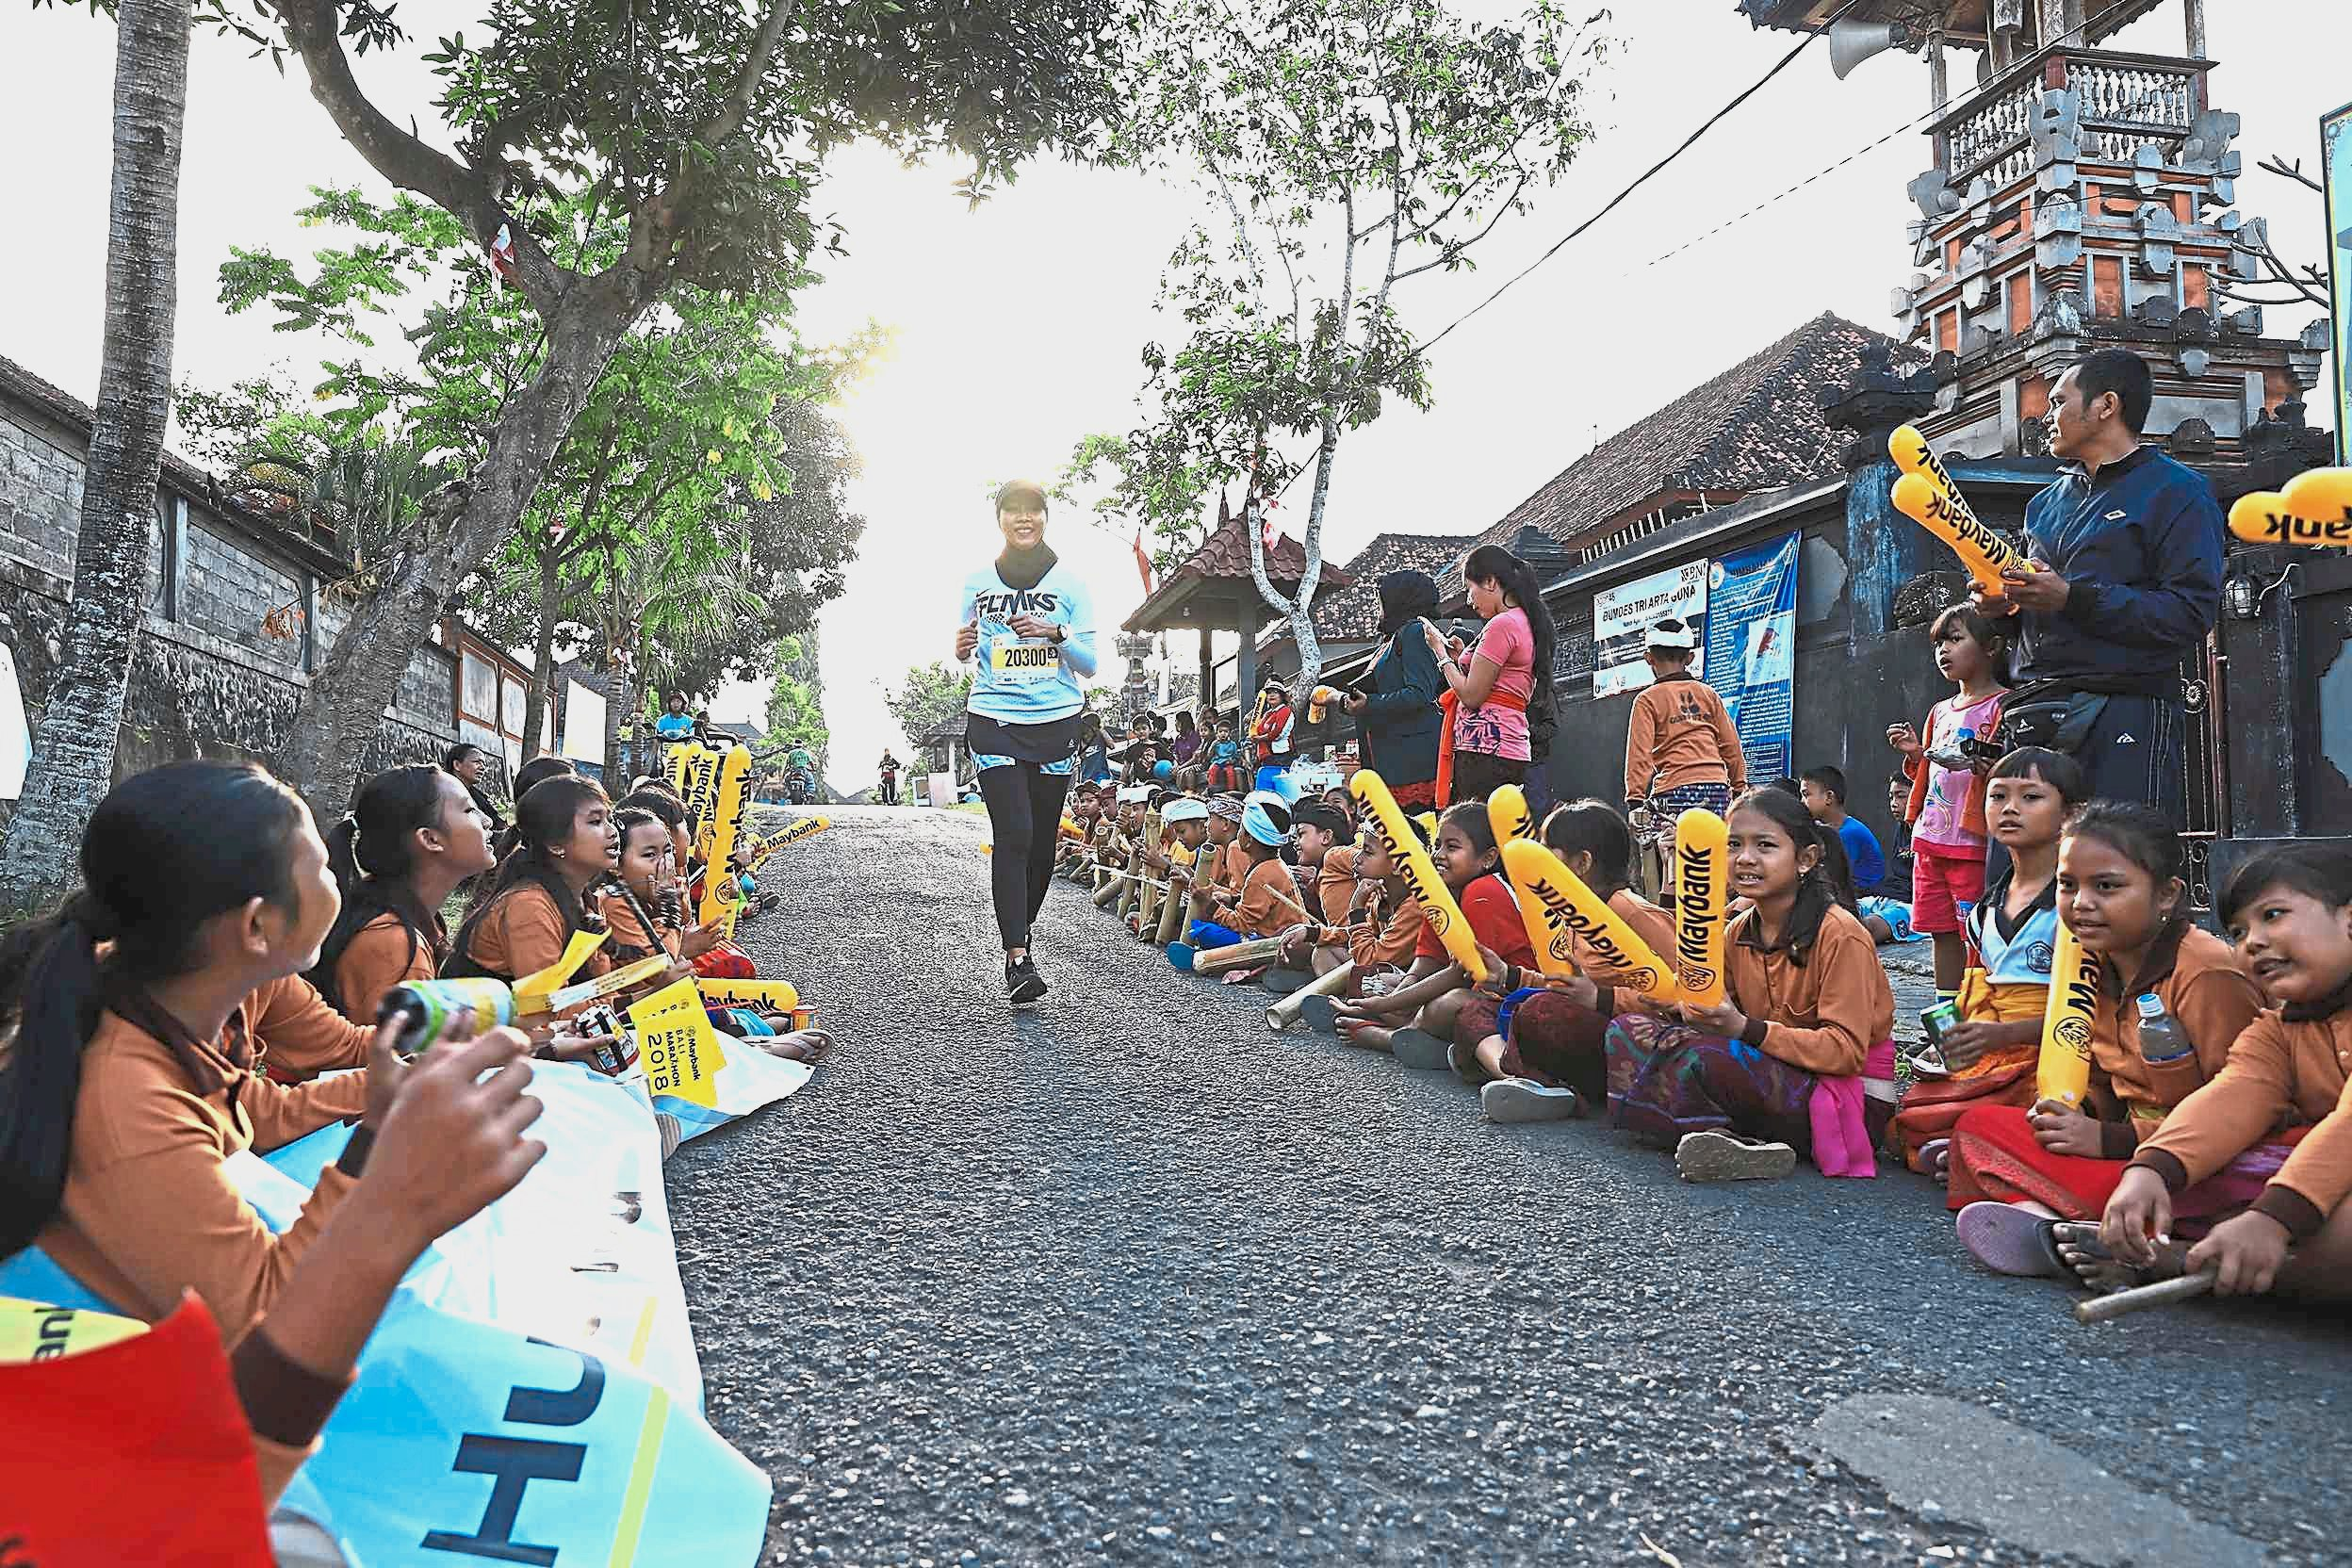 Children lining the route cheering therunners on as they passed through a village.